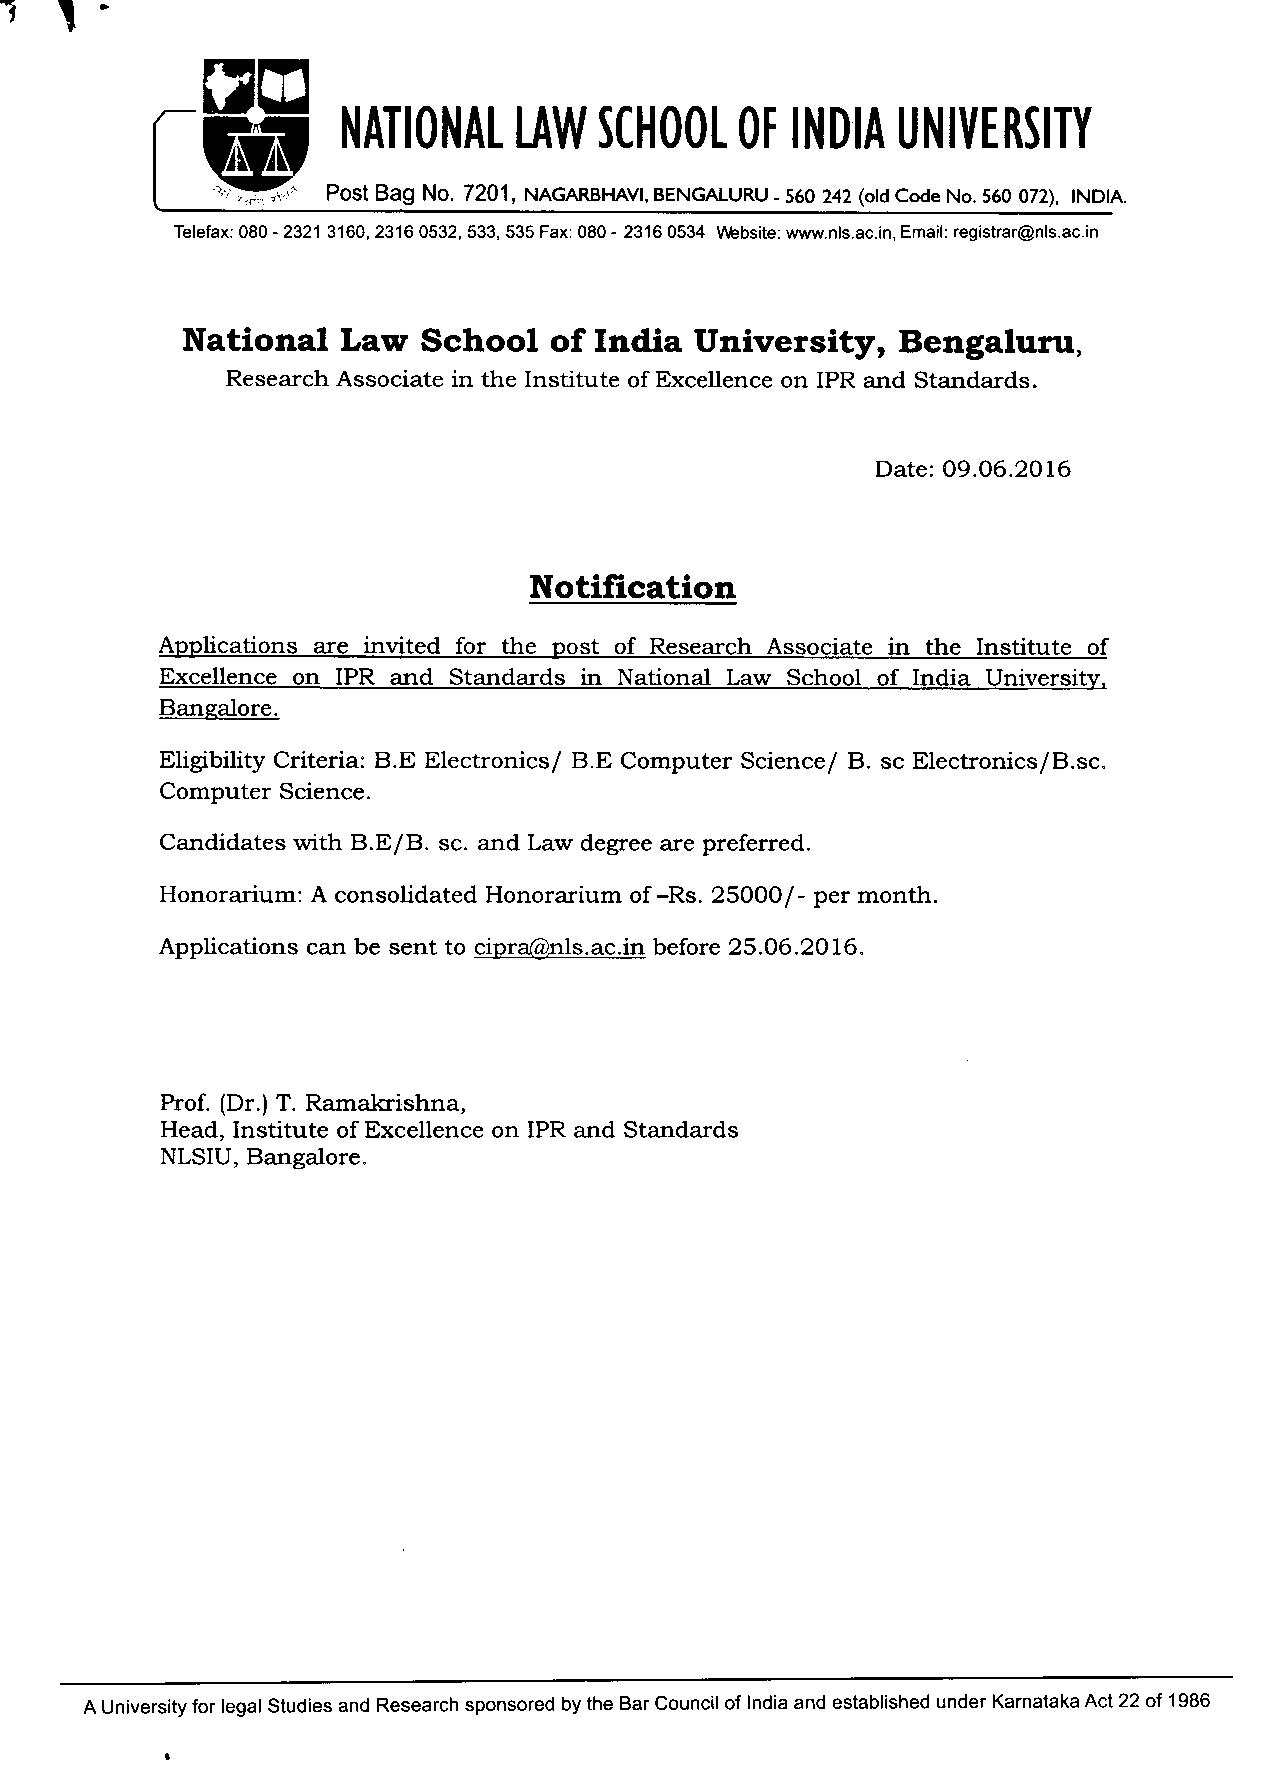 JOB POST: Research Associate @ NLSIU, Bangalore